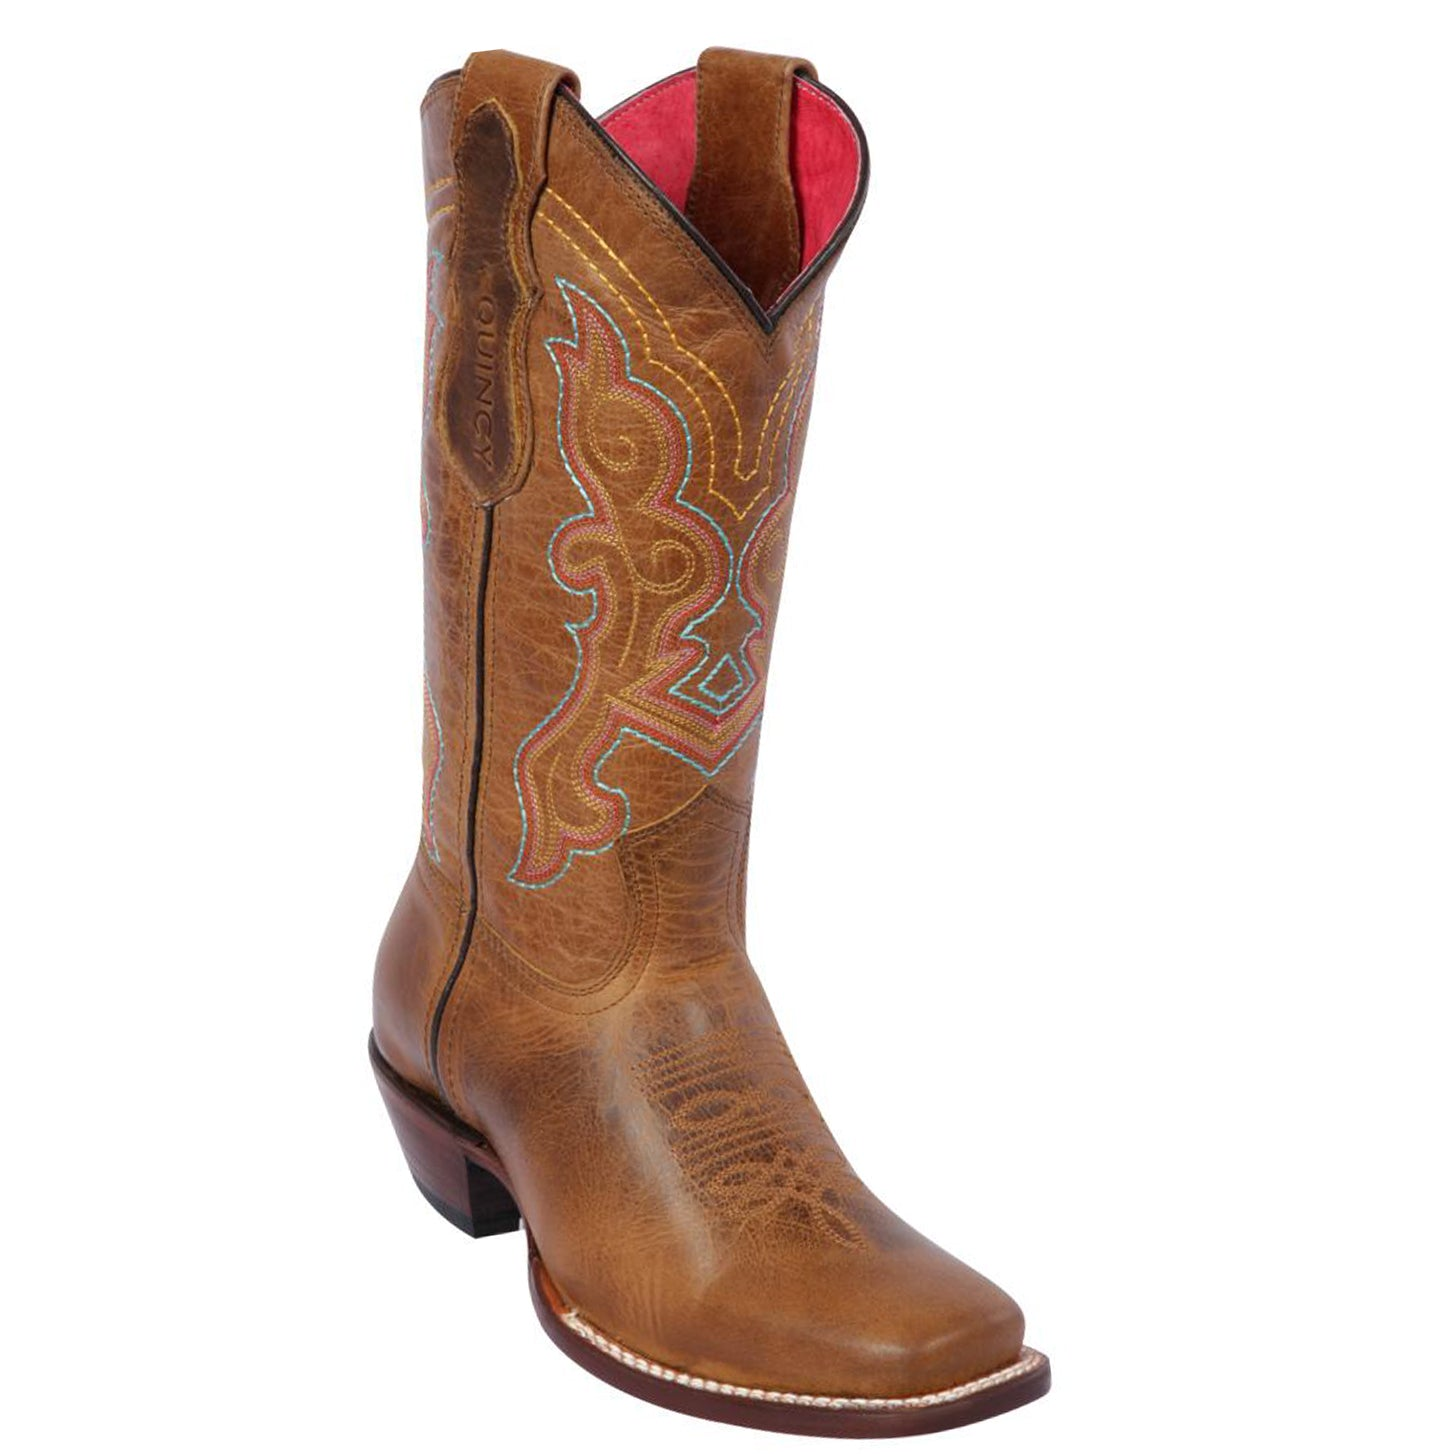 Quincy Buttercup Square Toe Cowgirl Boots